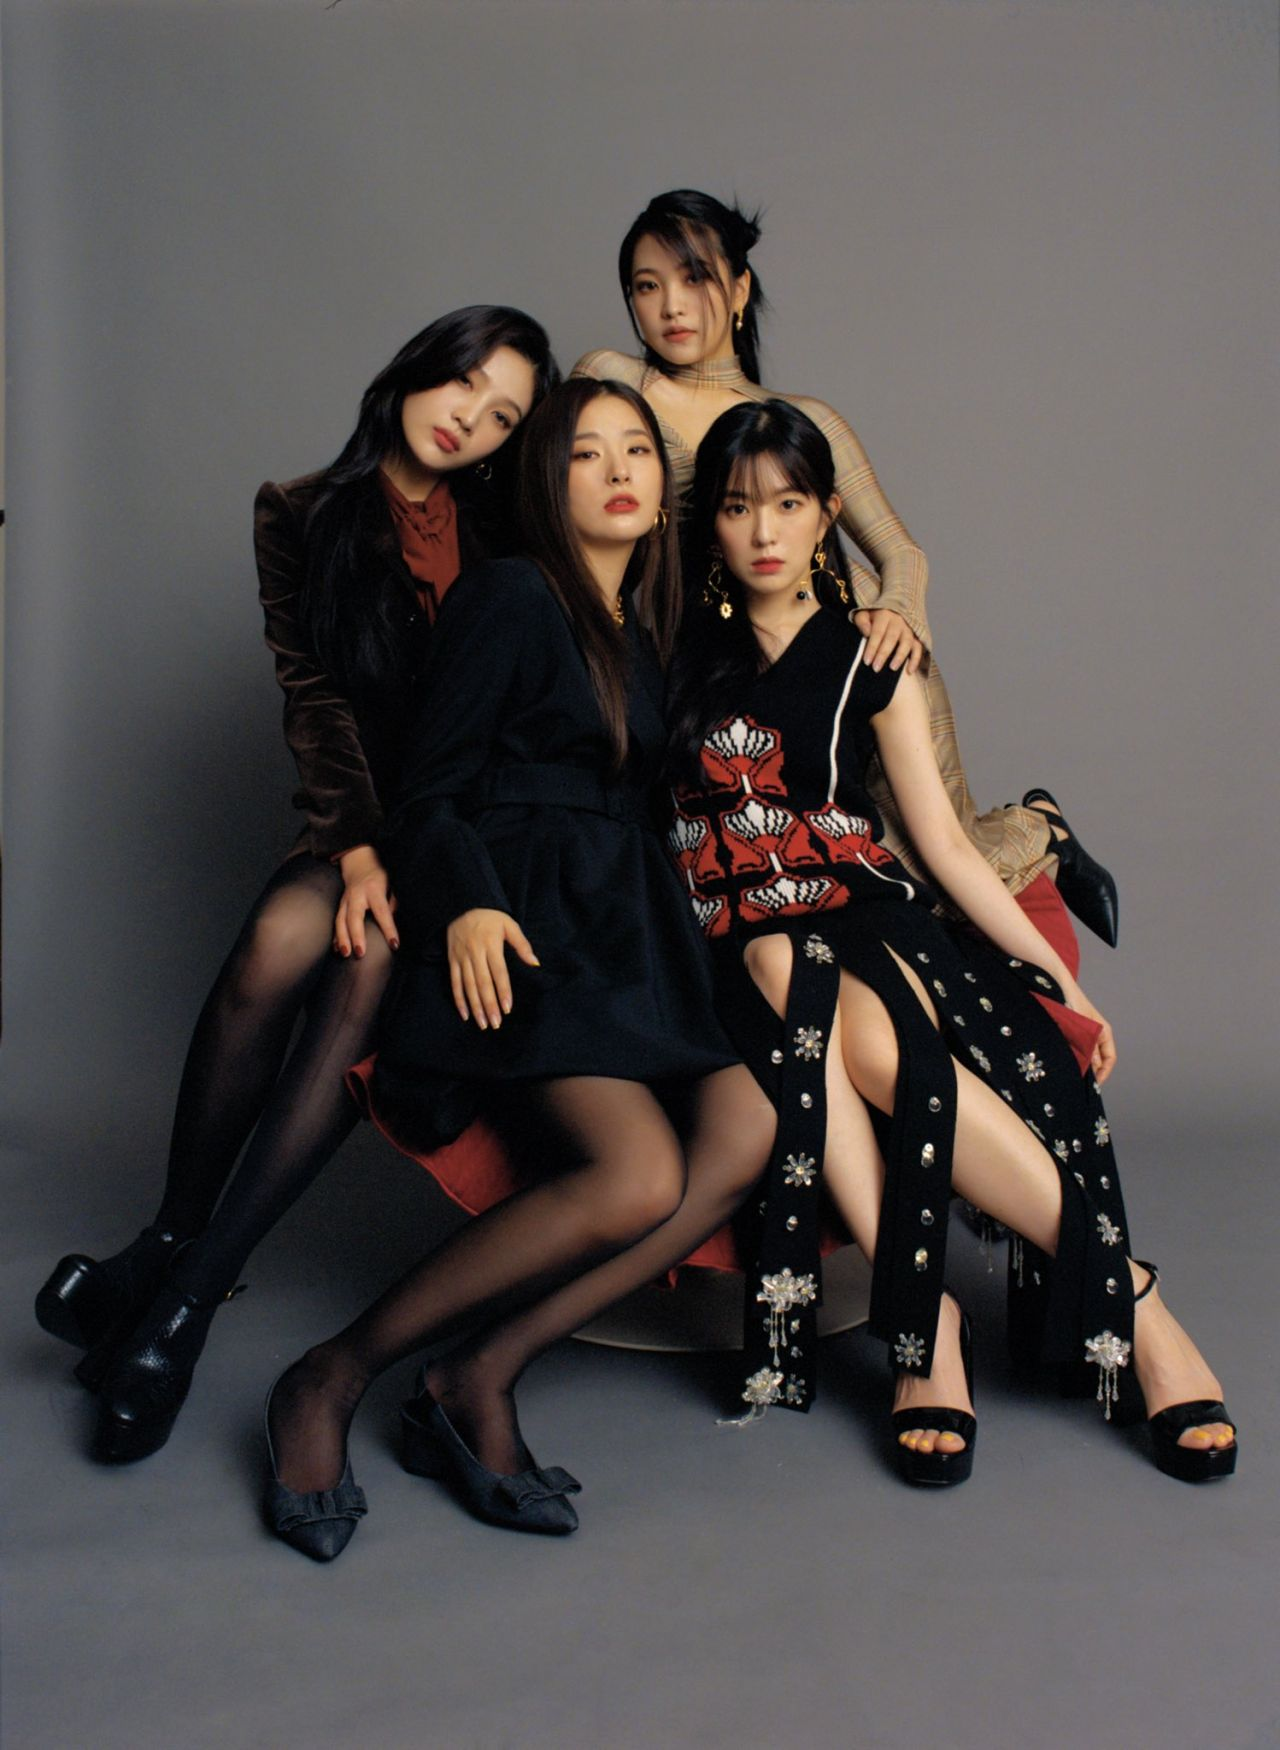 Red Velvet Style Clothes Outfits And Fashion Celebmafia